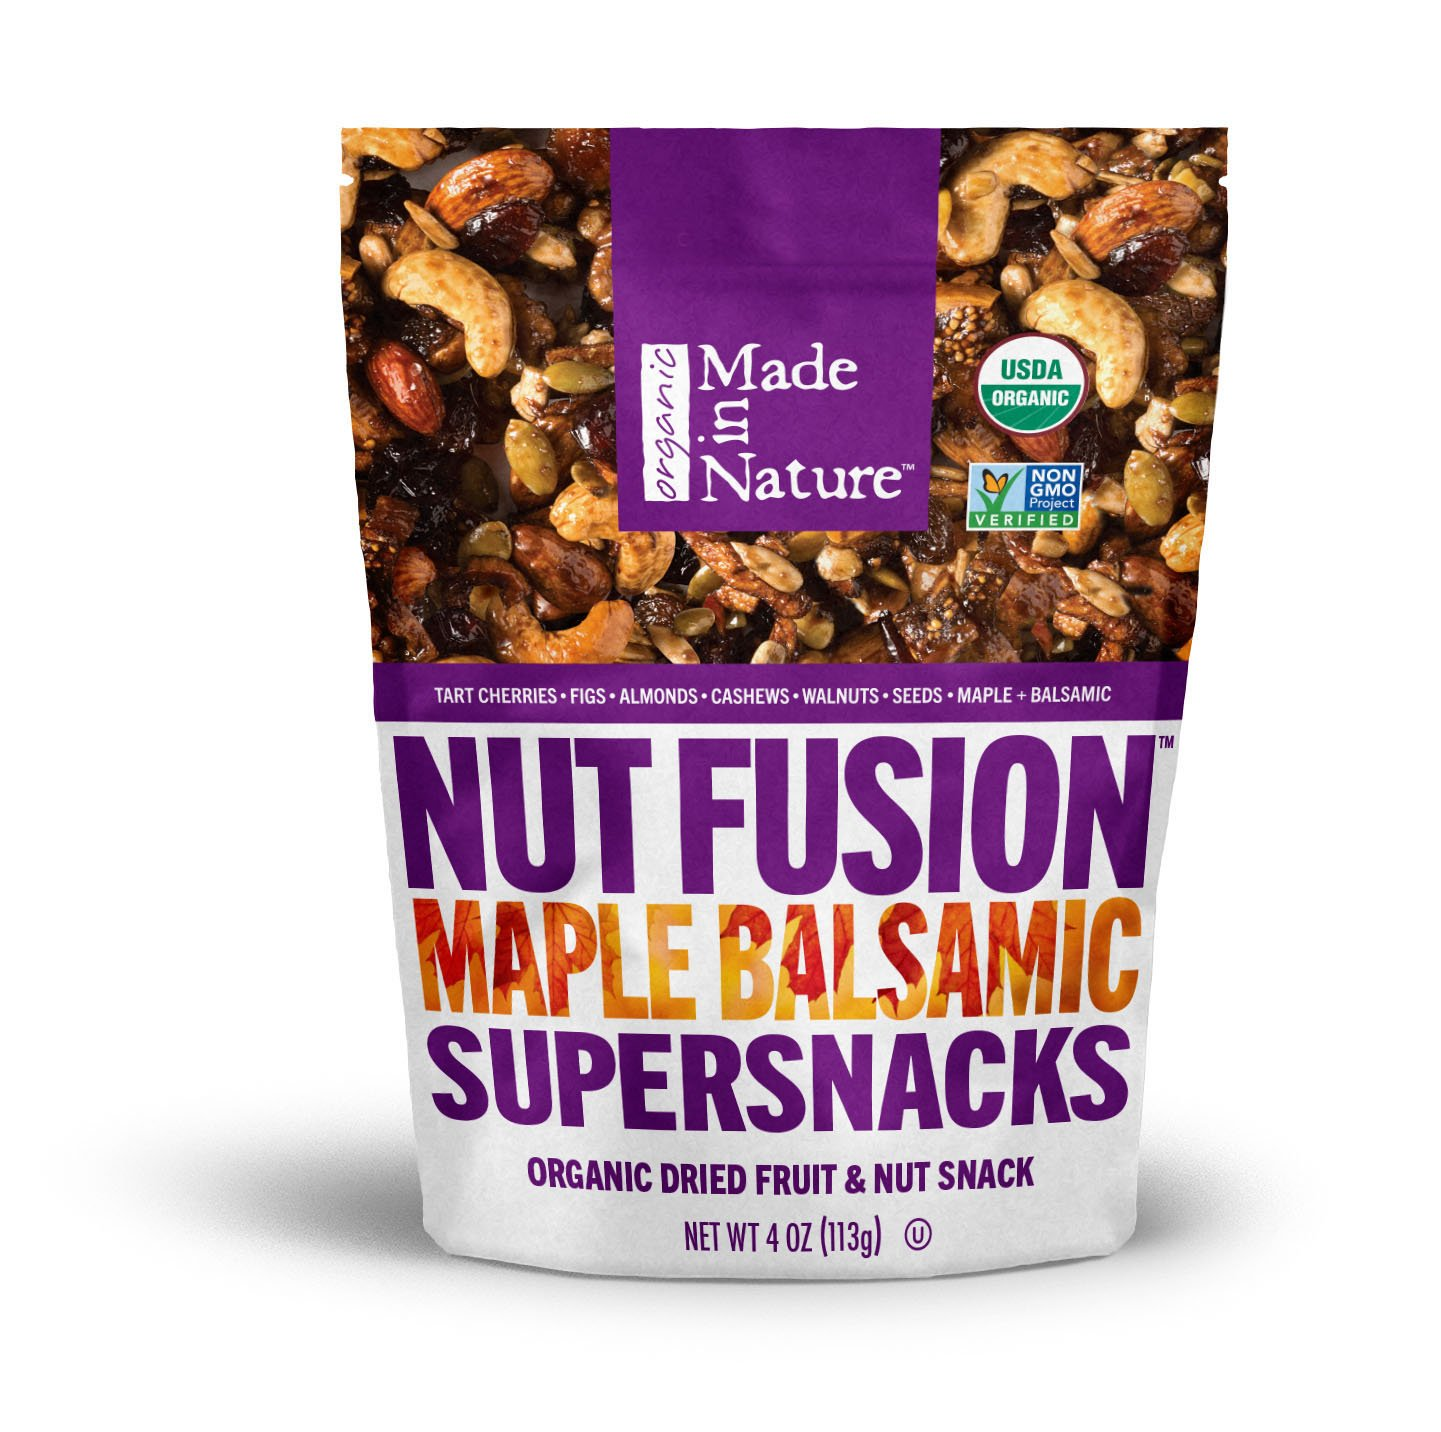 Made in Nature Organic Super Snacks, Maple Balsamic Nut & Fruit Fusion, A Sweet & Savory Blend of Cherries, Figs, Almonds, & Cashews with a Kiss of Maple Syrup & Balsamic Vinegar, 4 Ounce (Pack of 6)